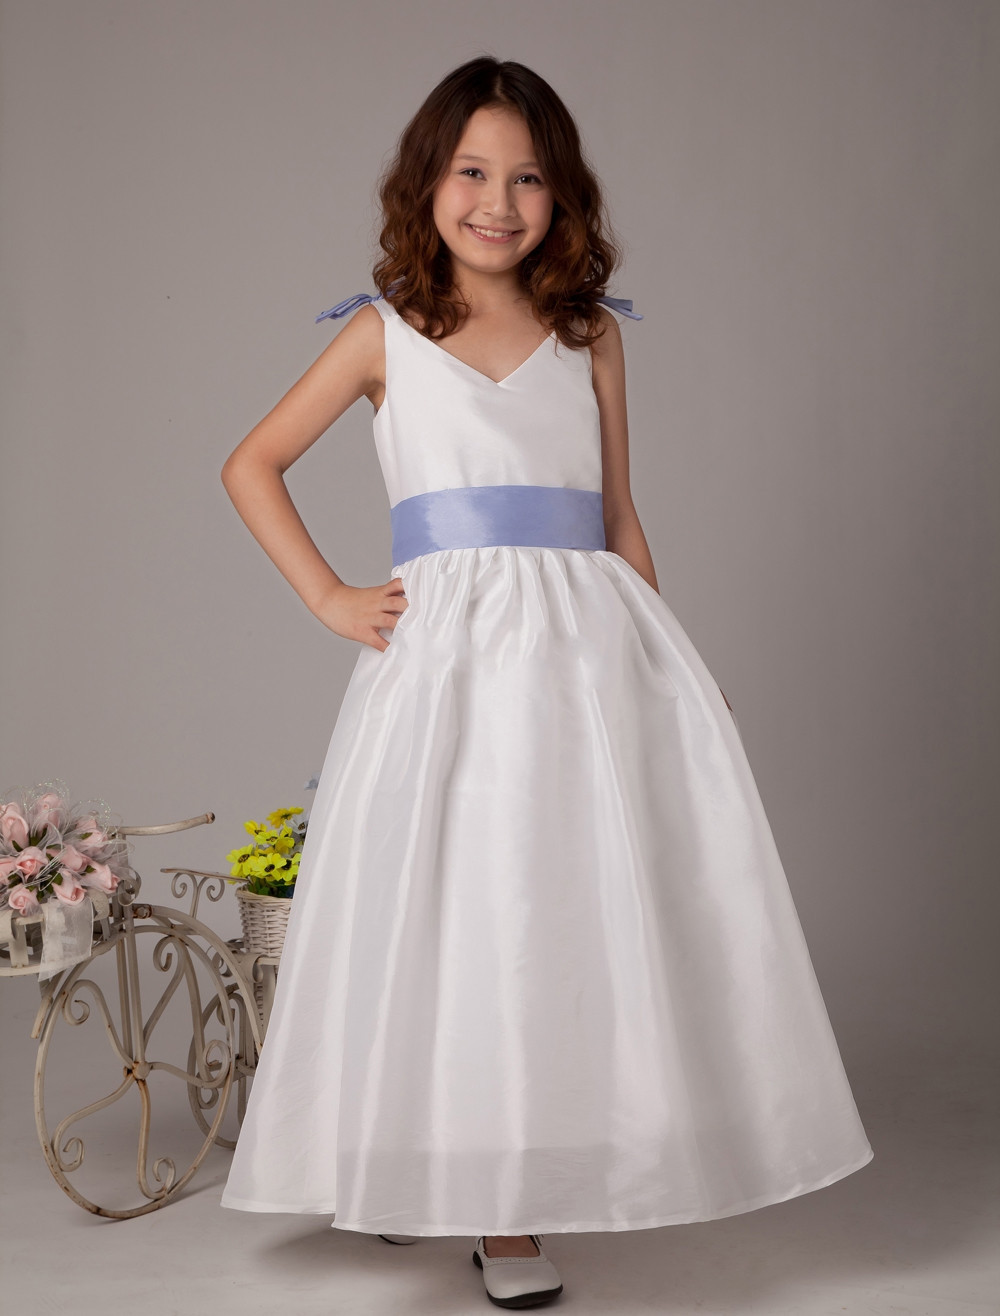 A-Line First Communion Dresses for Girls Sleeveless Flower Girl Gresses for Weddings Ankle-Length Mother Daughter Dresses a line knee length taffeta sleeveless flower girl dress for weddings jewel neck princess girls satin mother daughter dresses